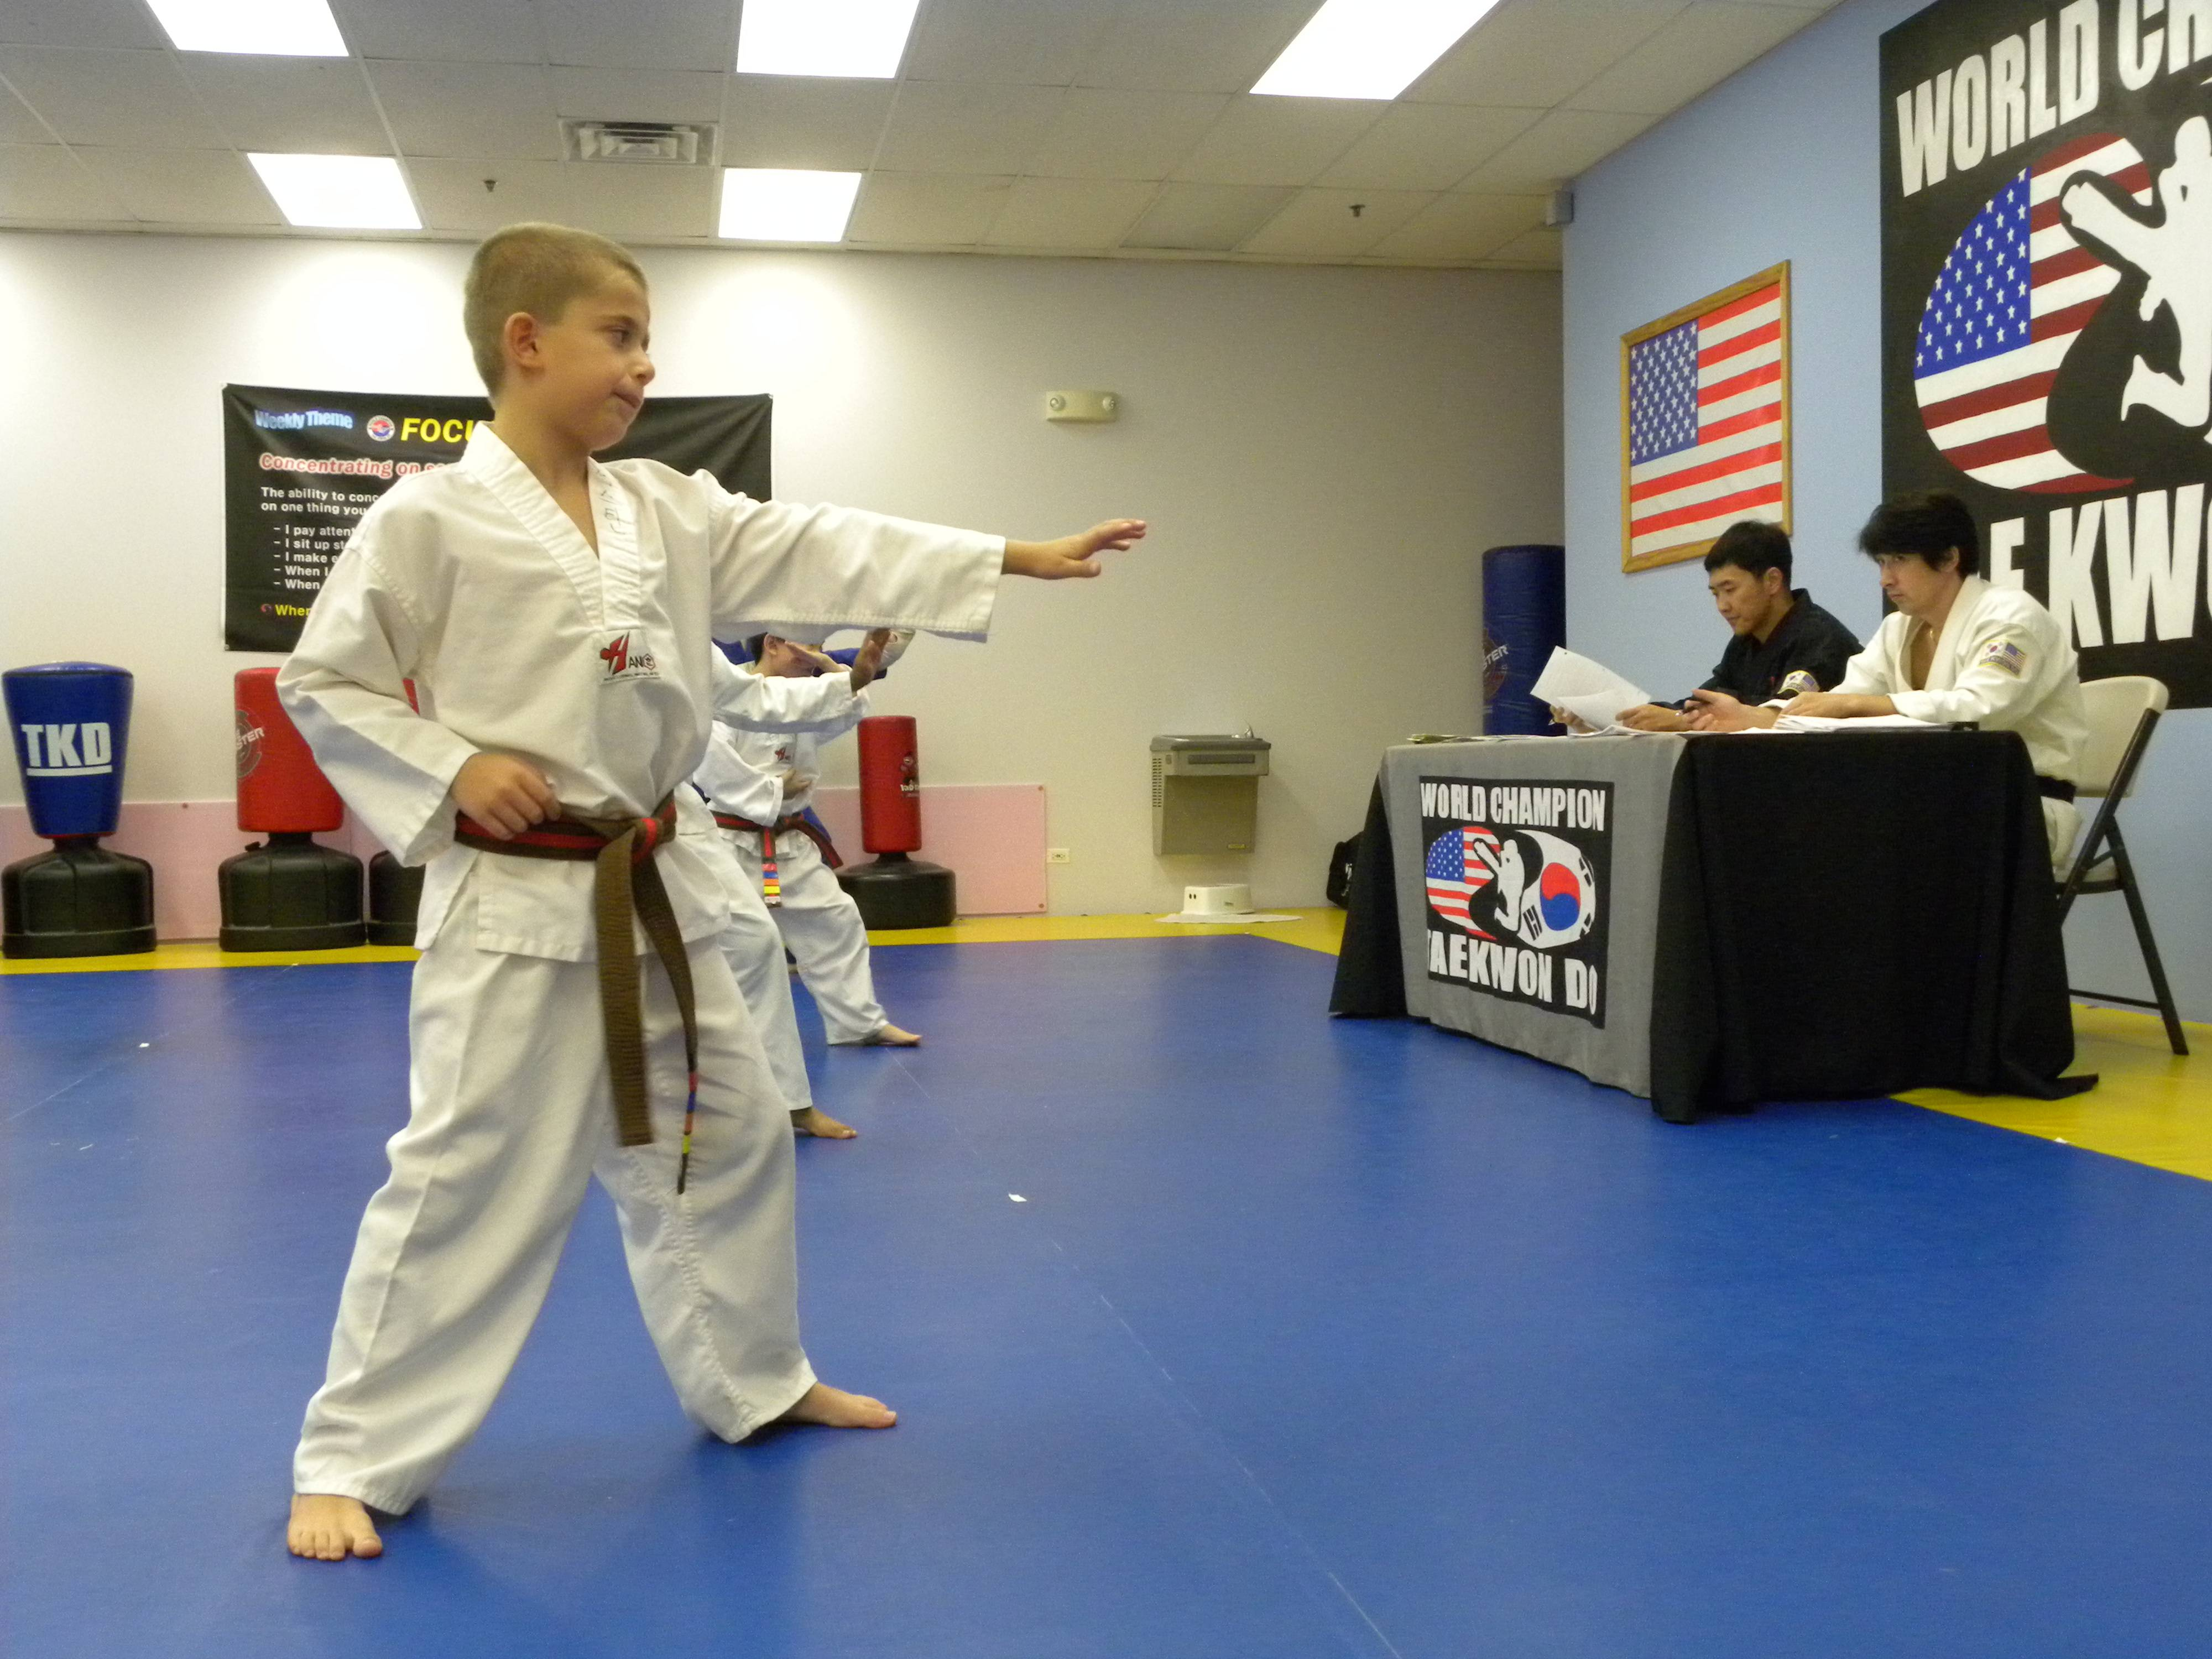 Justin Plackowska of Naperville quickly found success in tae kwon do, his instructor said. Justin was found murdered Tuesday.